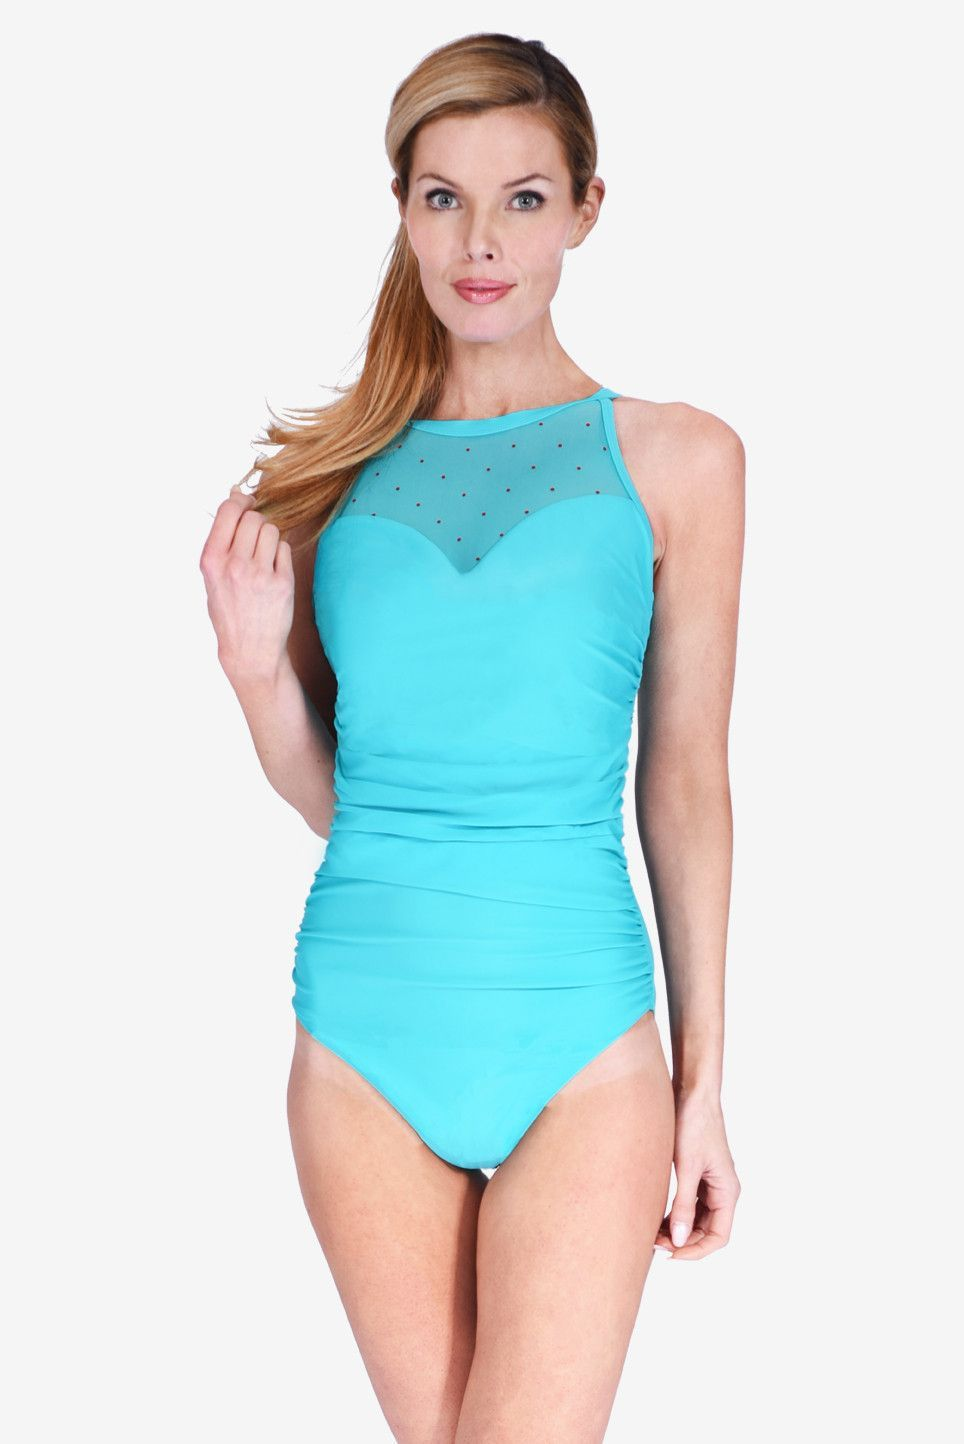 63aba2b3b2eab Mesh High Neck Ruched Underwire One Piece Women s Swimsuit Maillot by Mazu  Swim